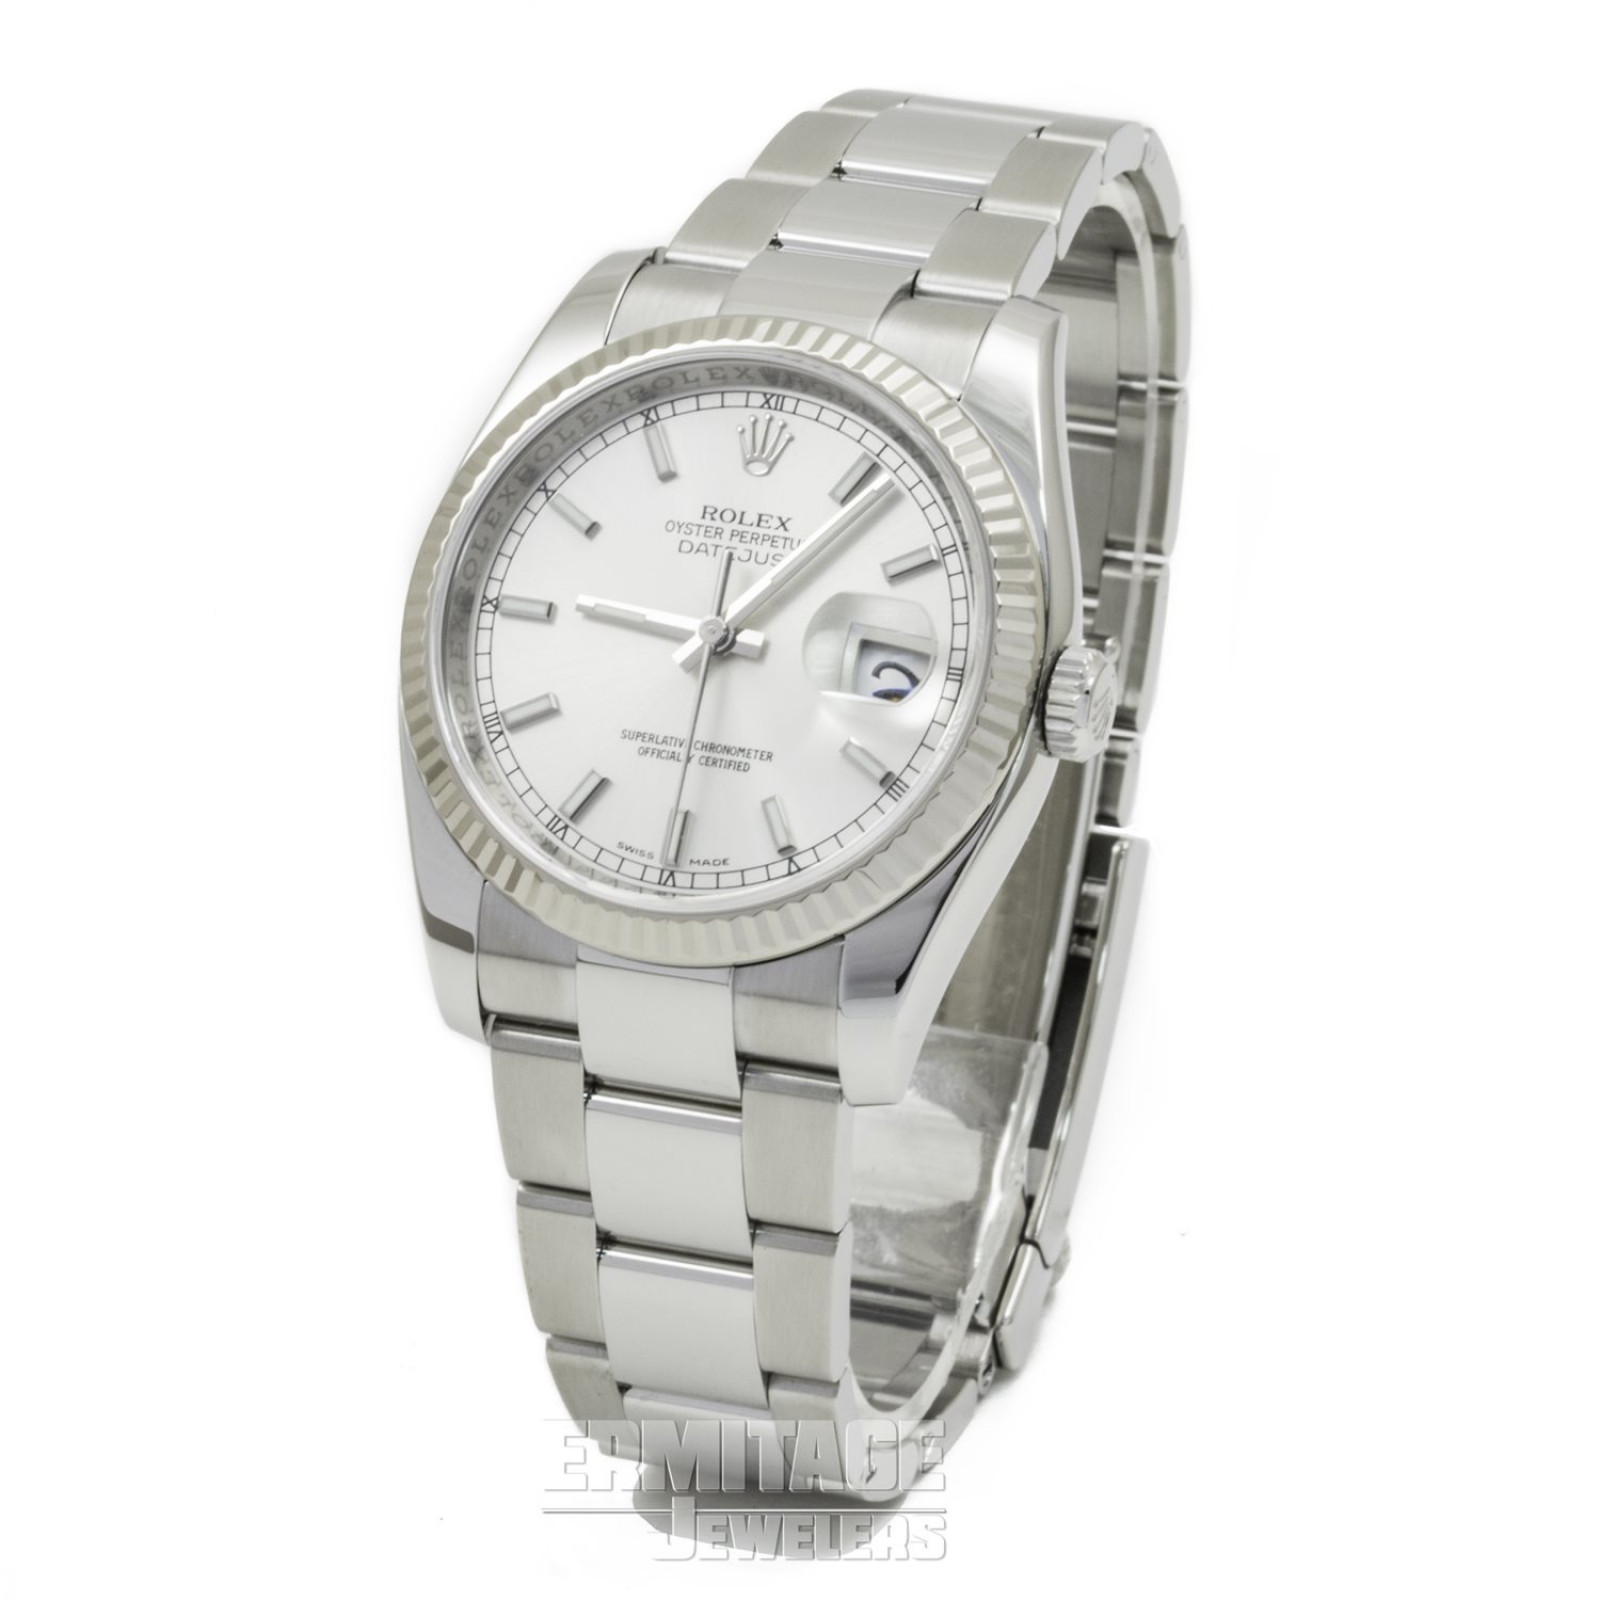 White Gold & Steel on Oyster Rolex Datejust 116234 36 mm